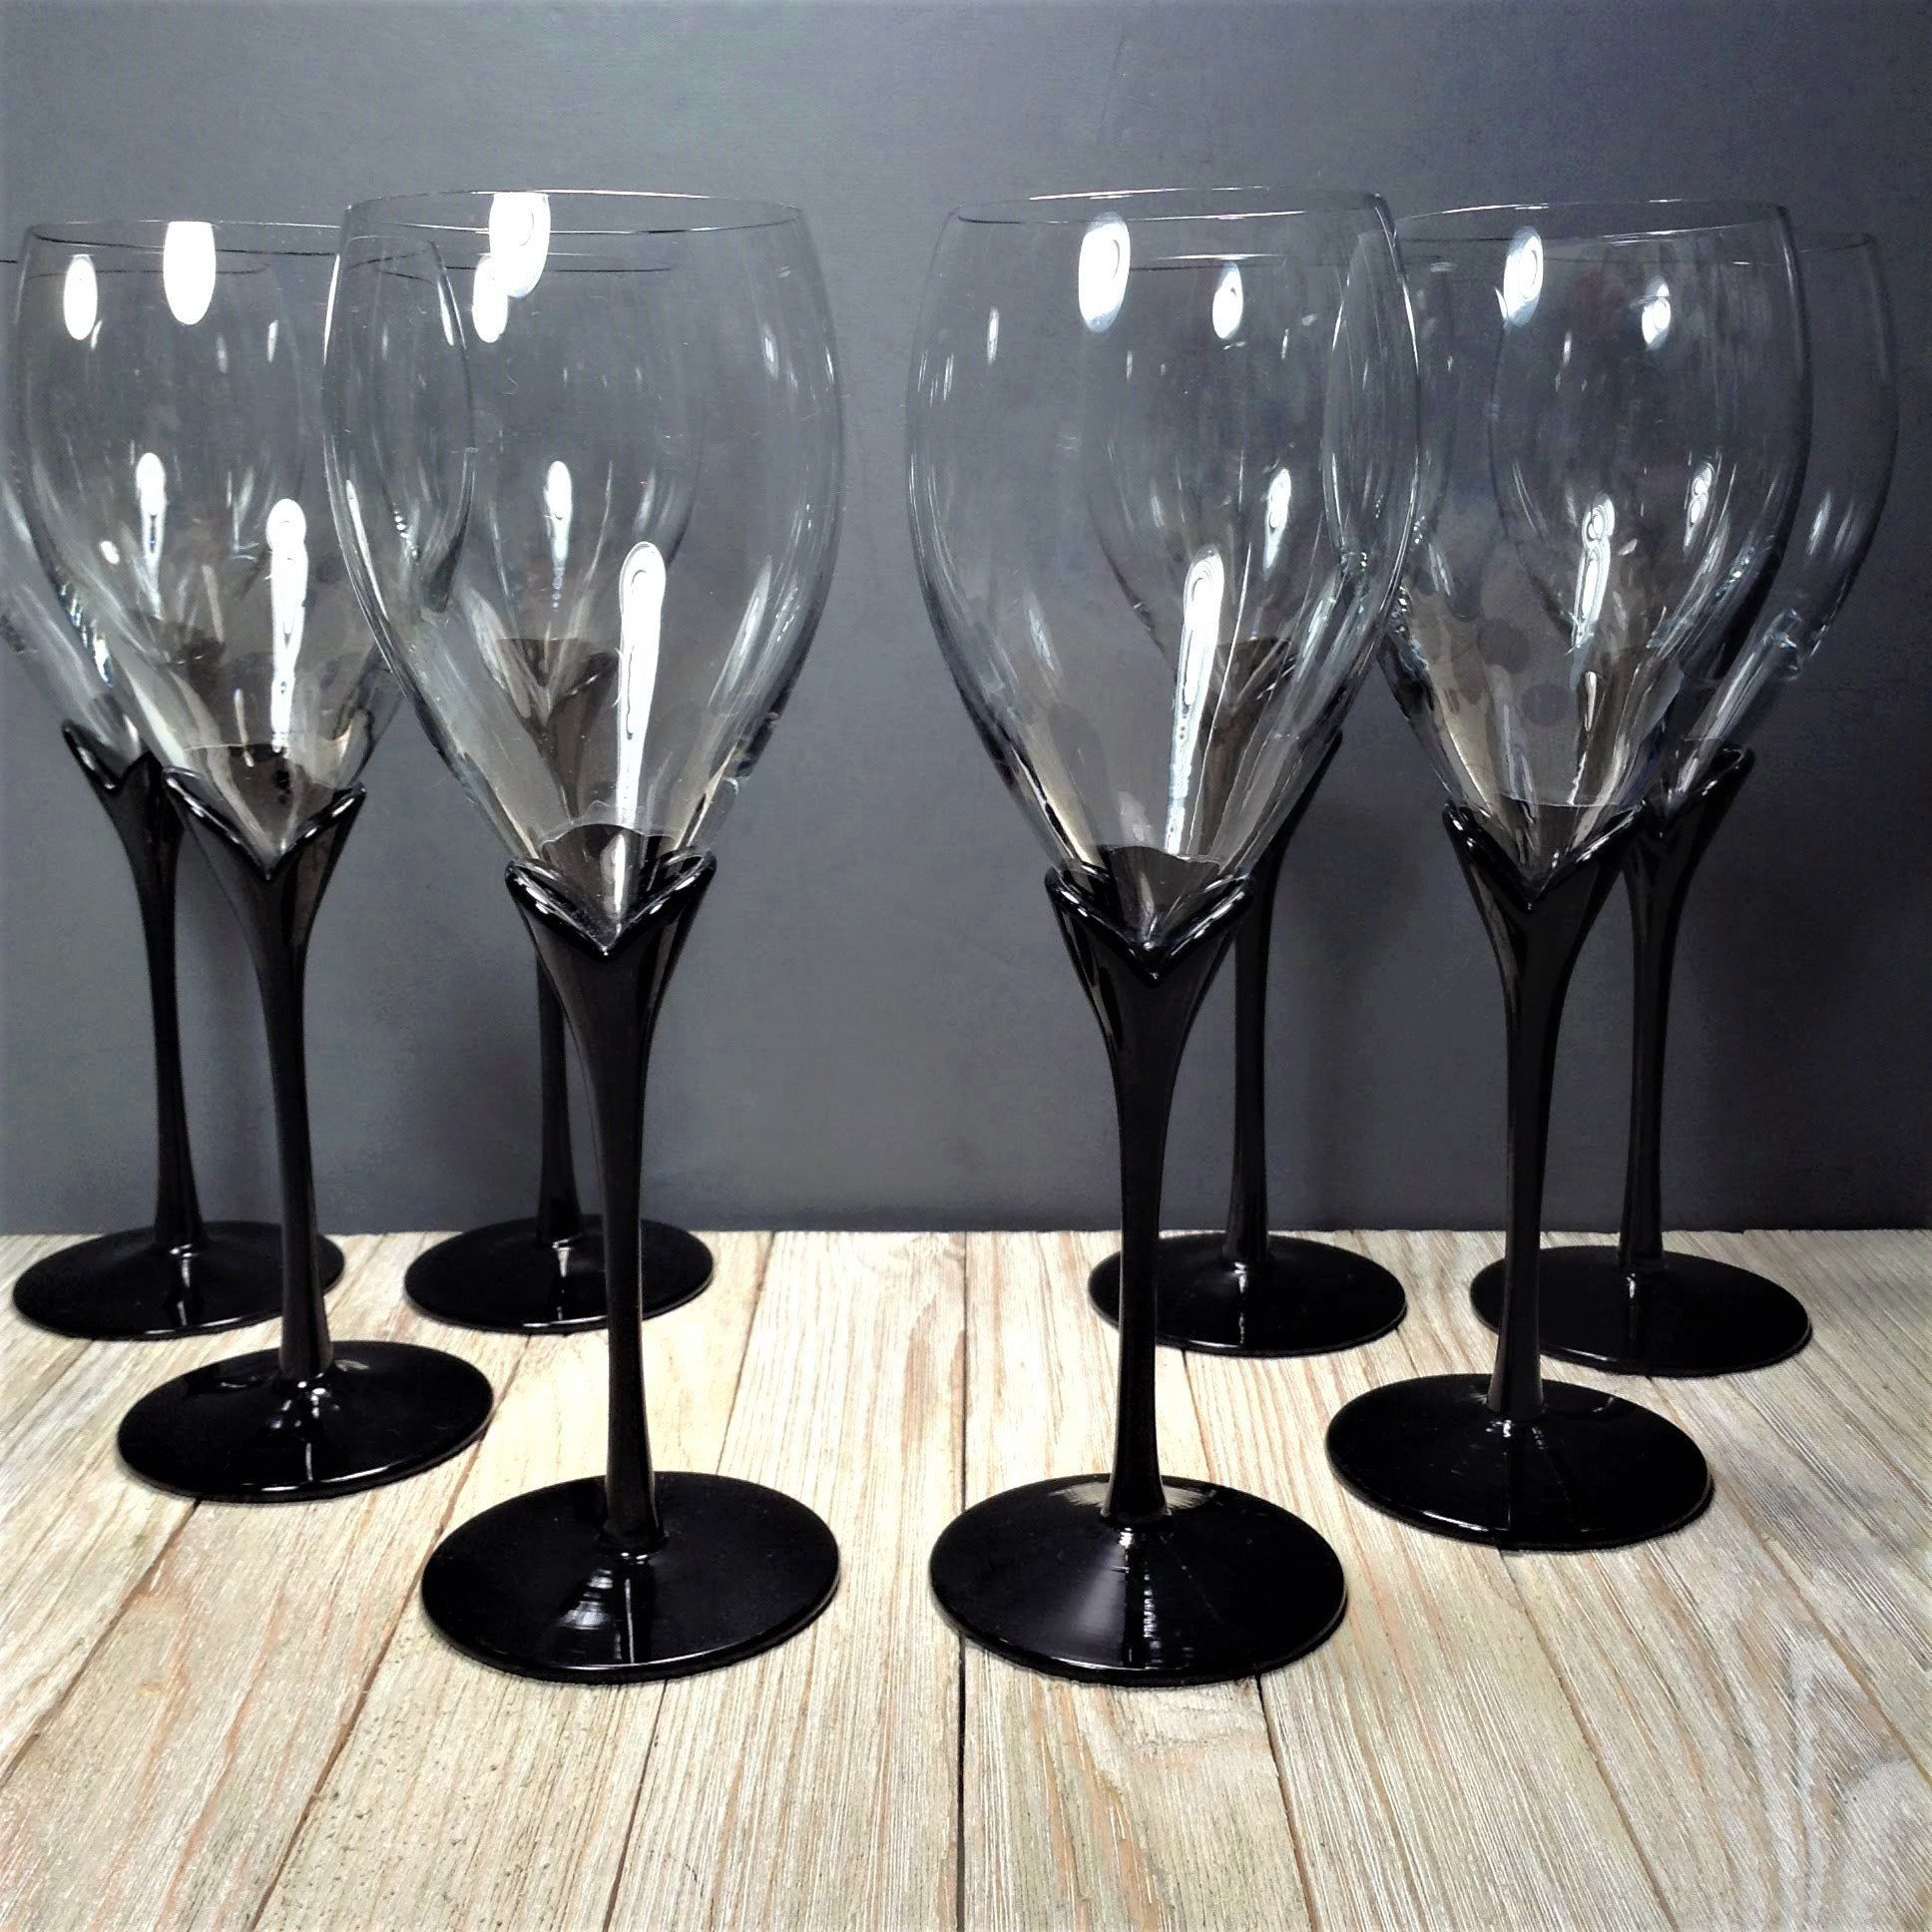 Three Cute Art Deco Small Wine Glasses With Seams By Oakandthorn 12 00 Small Wine Glasses Art Deco Pattern Cute Art